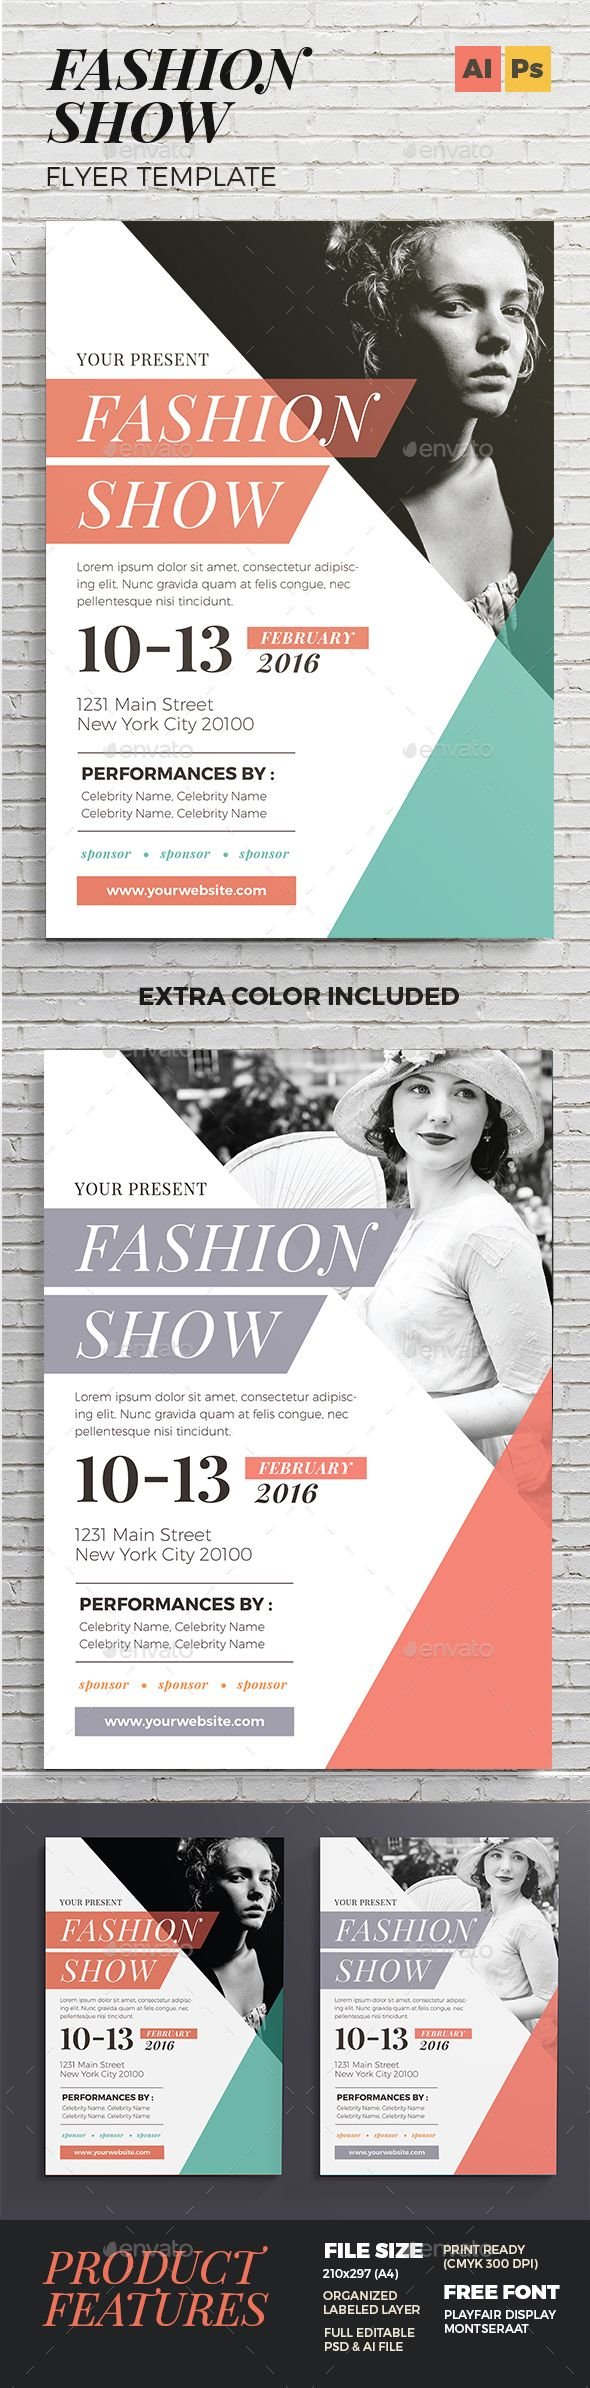 Poster design questionnaire - Fashion Show Flyer